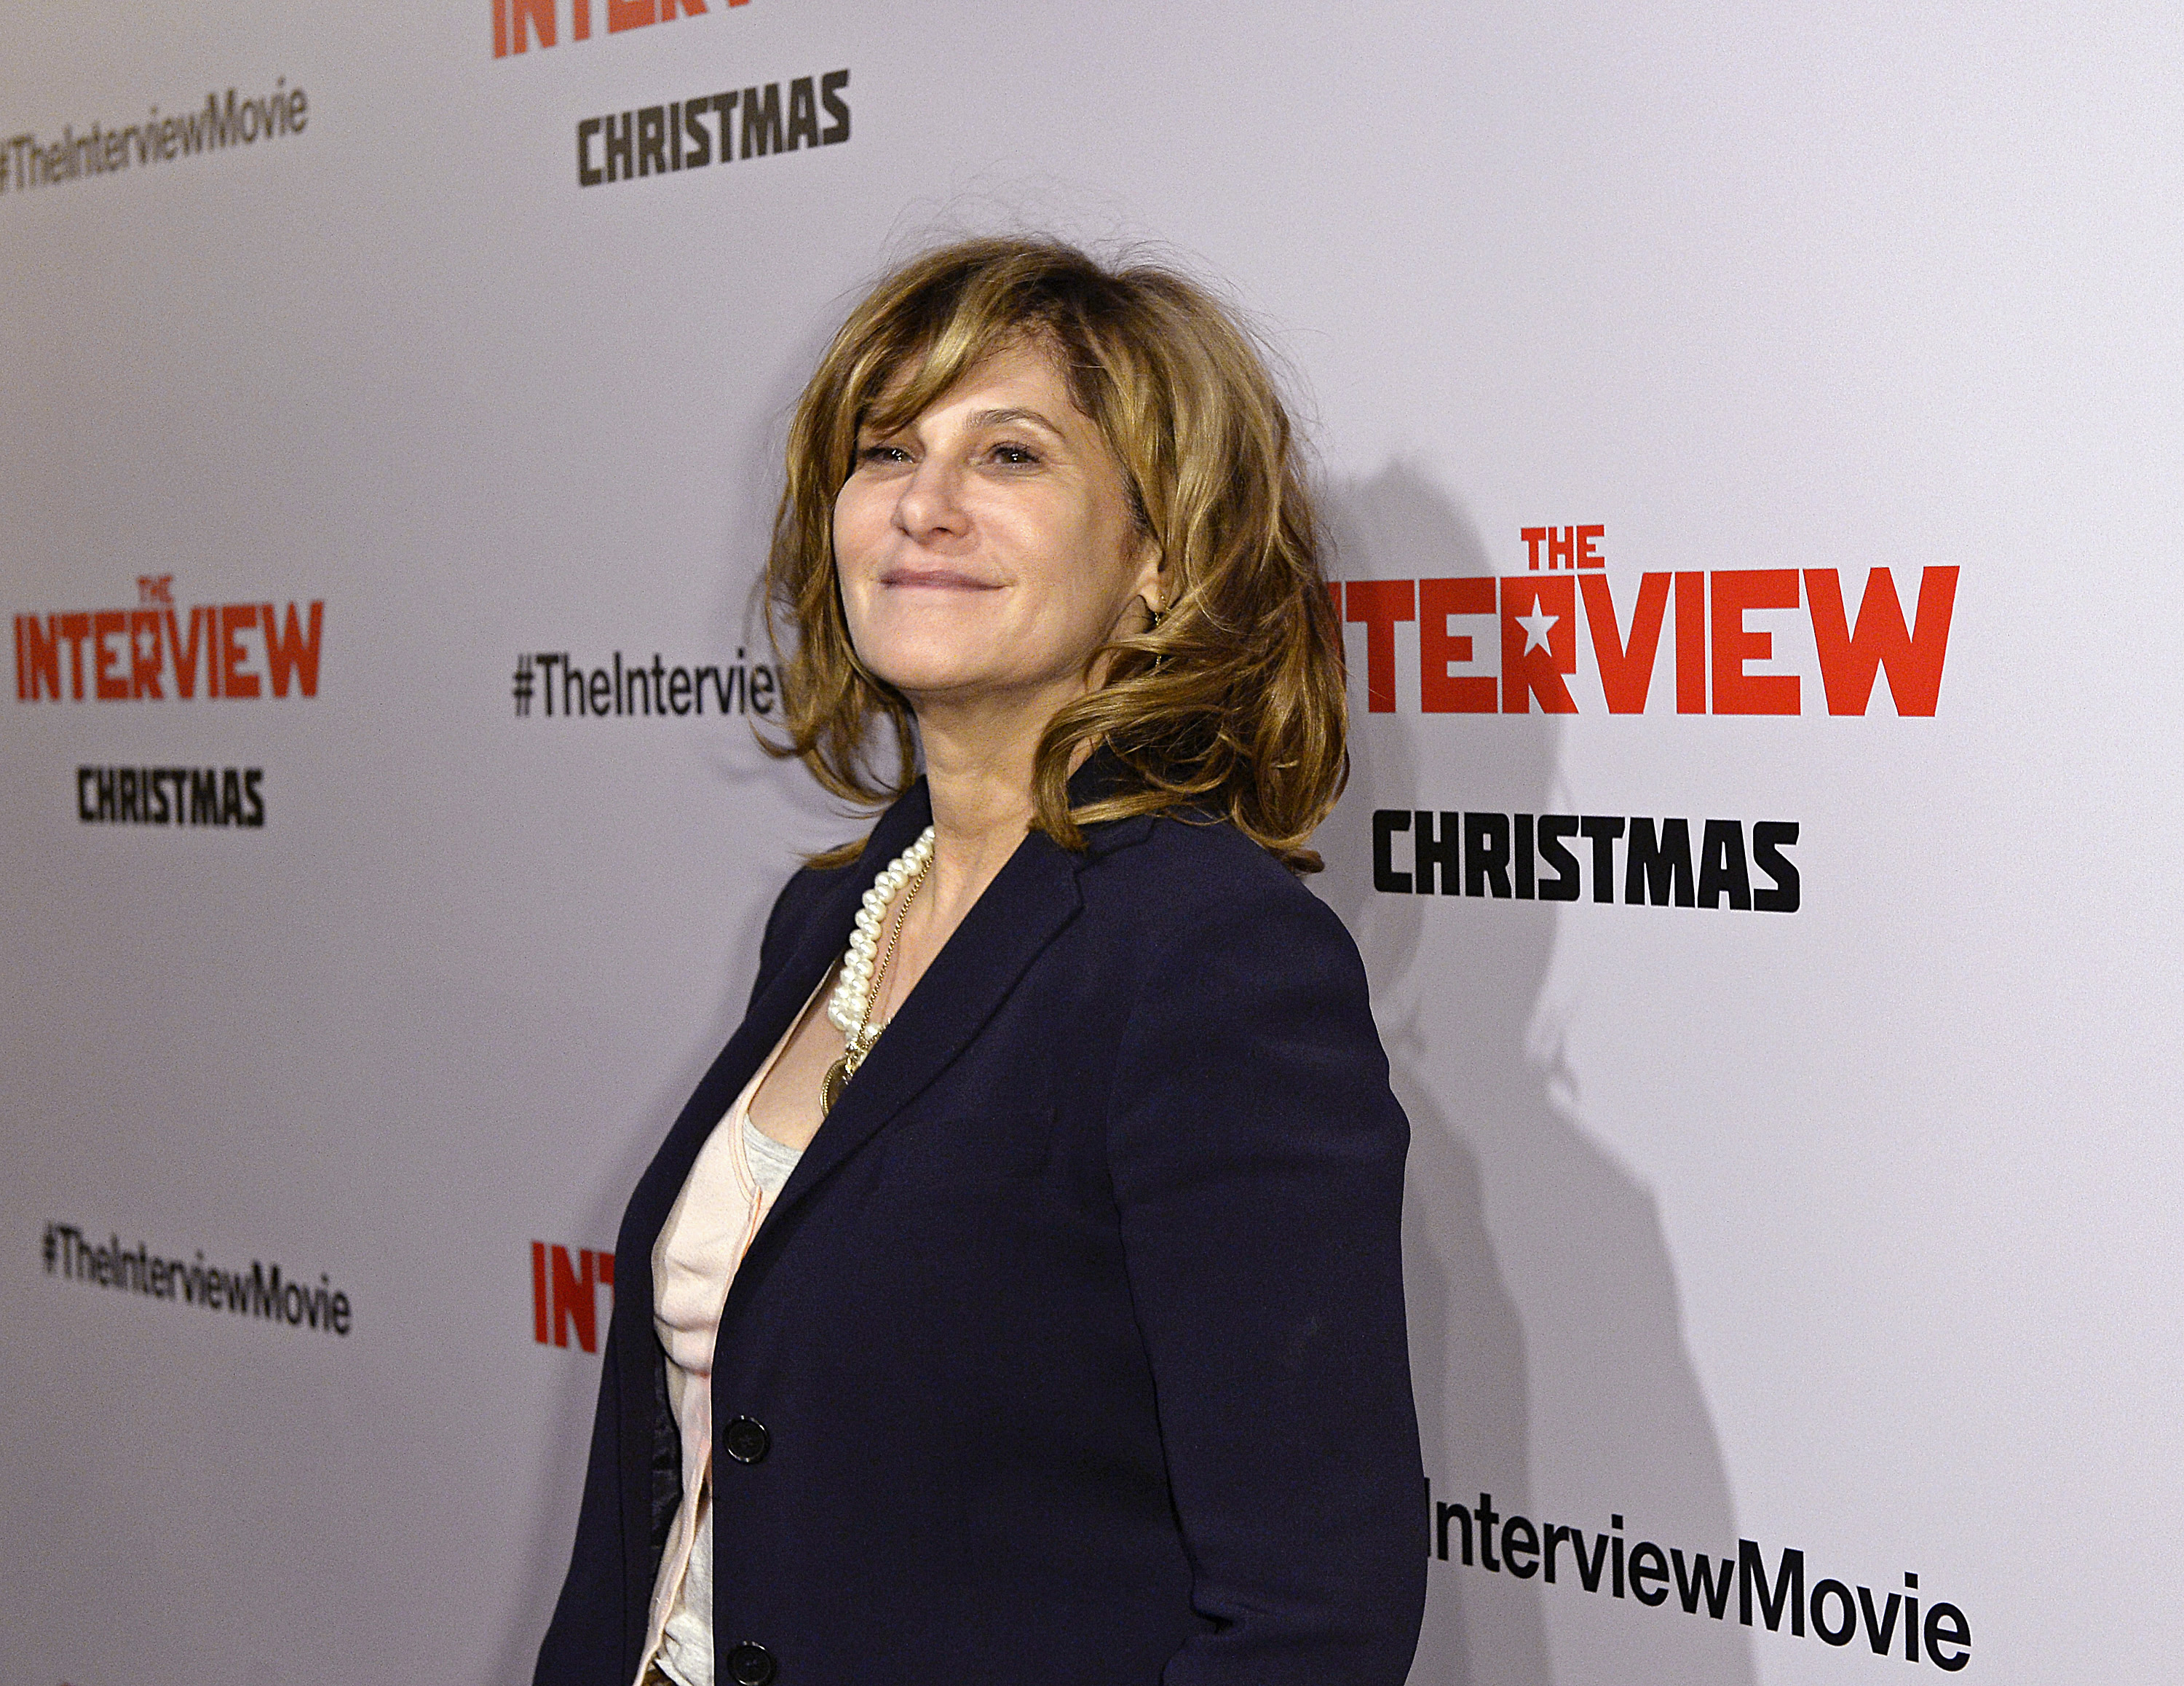 Amy Pascal is out as head of Sony's film division months after ...